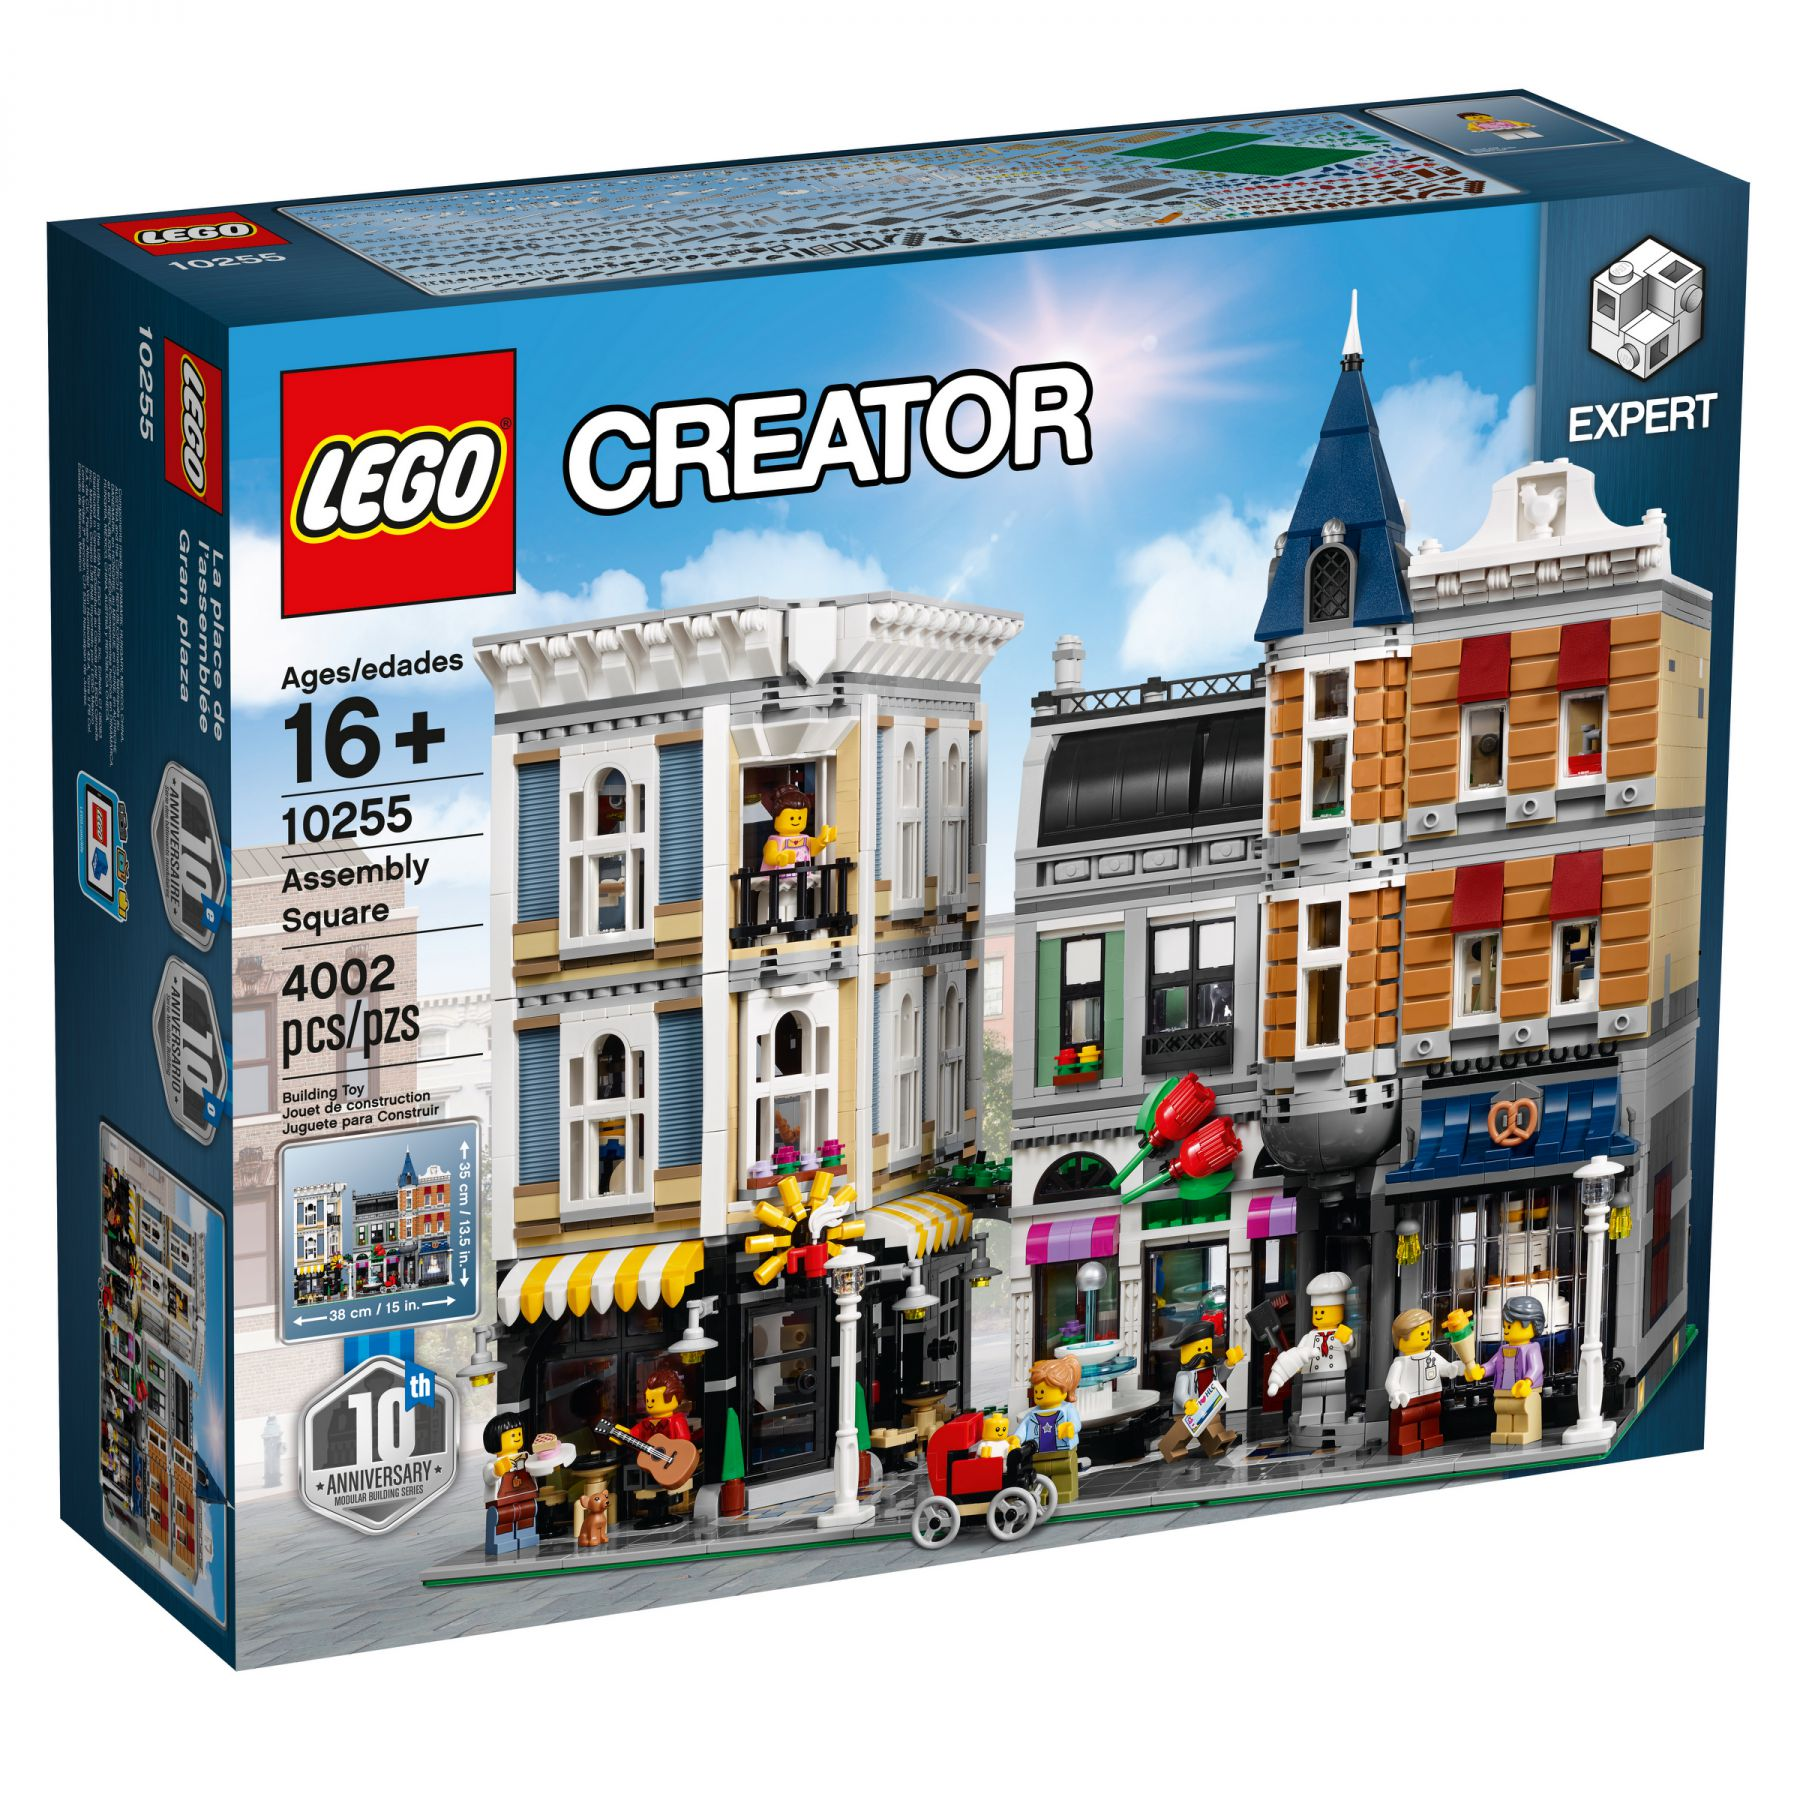 LEGO Advanced Models 10255 Stadtleben (Assembly Square) LEGO_10255_alt1.jpg